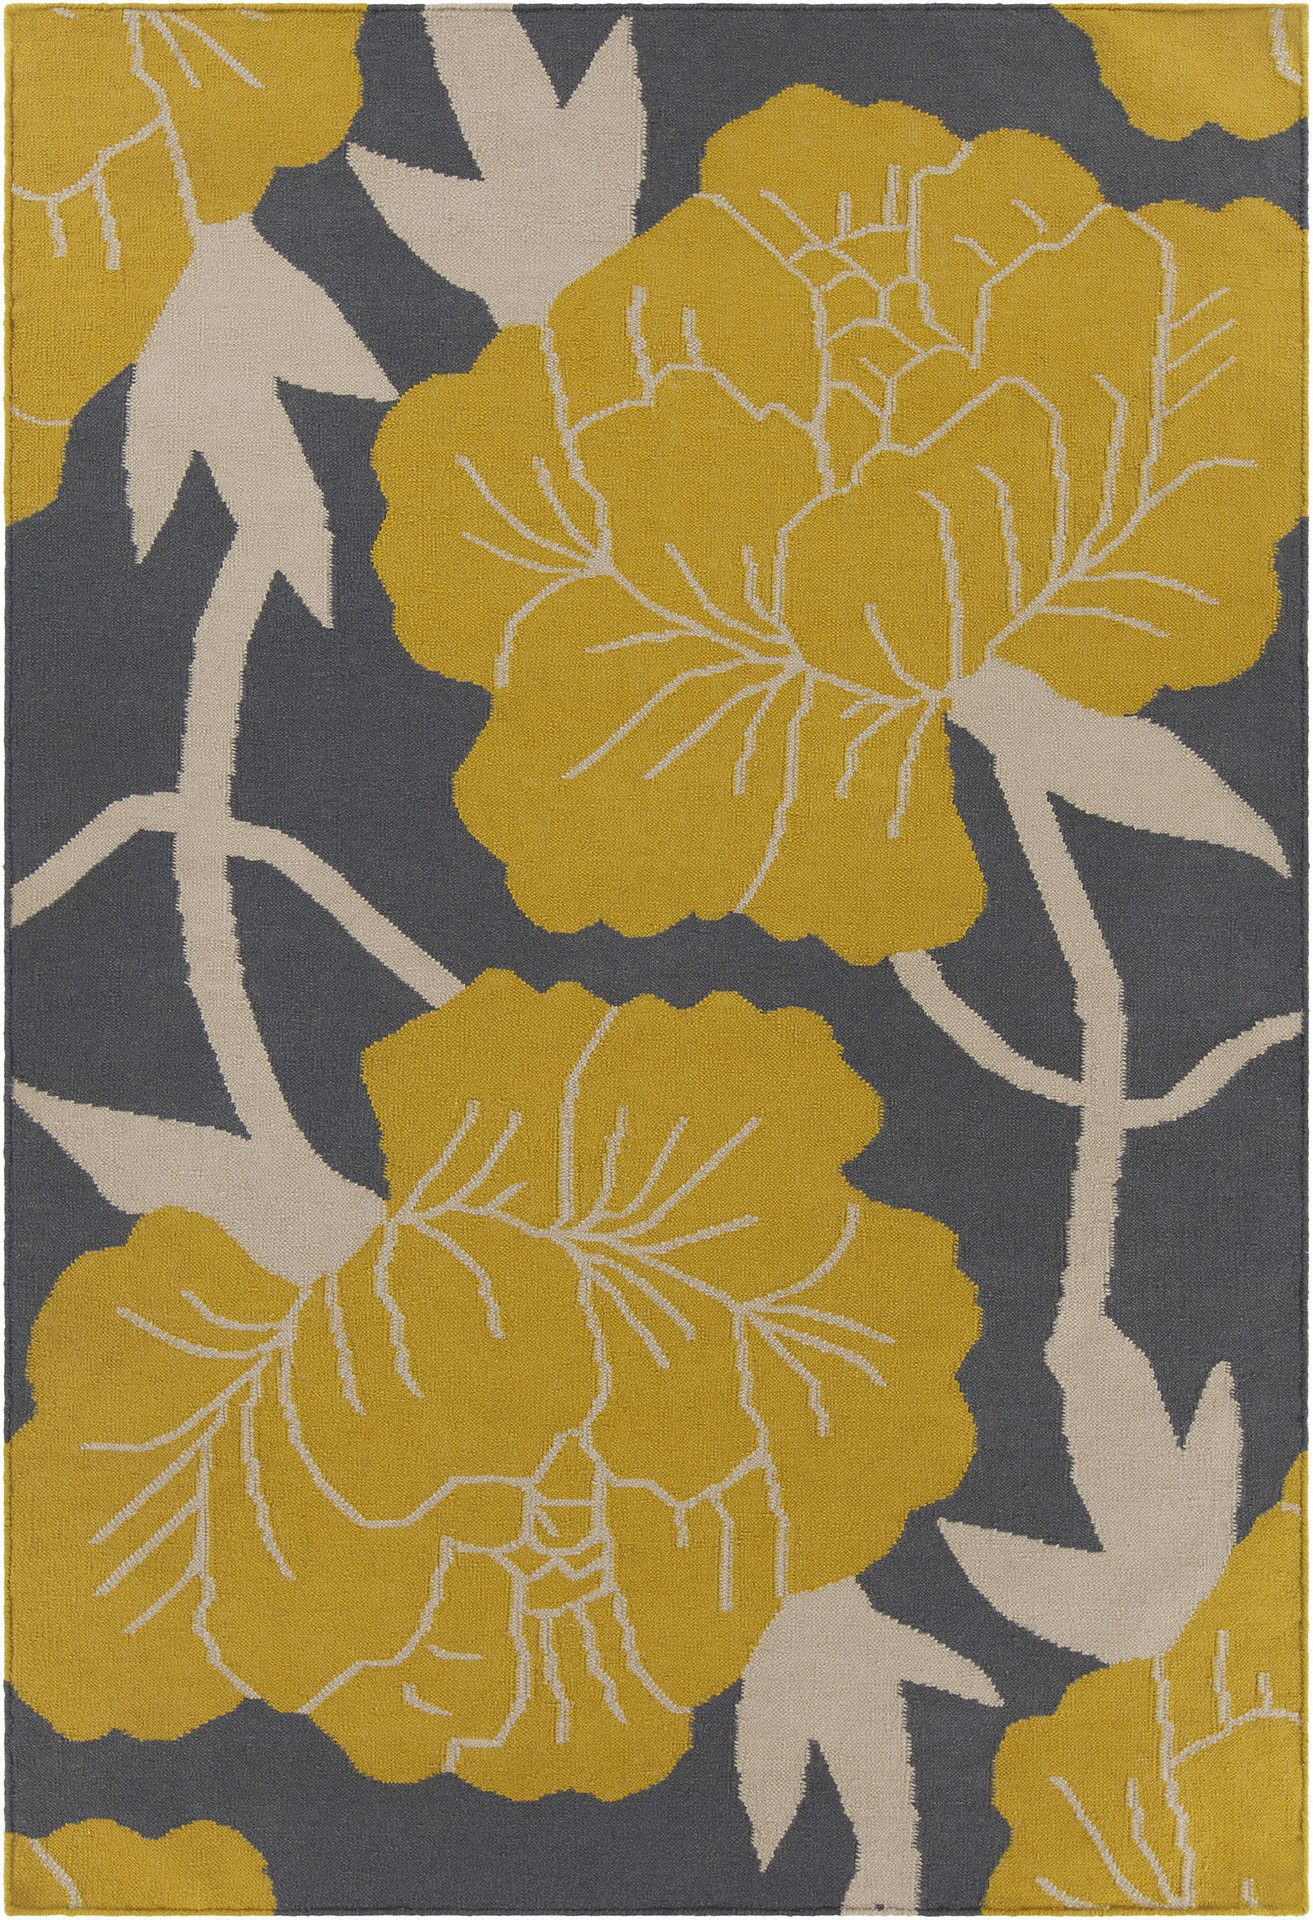 Thomaspaul collection flatweave area rug in grey yellow white thomaspaul collection flatweave area rug in grey yellow white design by chandra rugs mightylinksfo